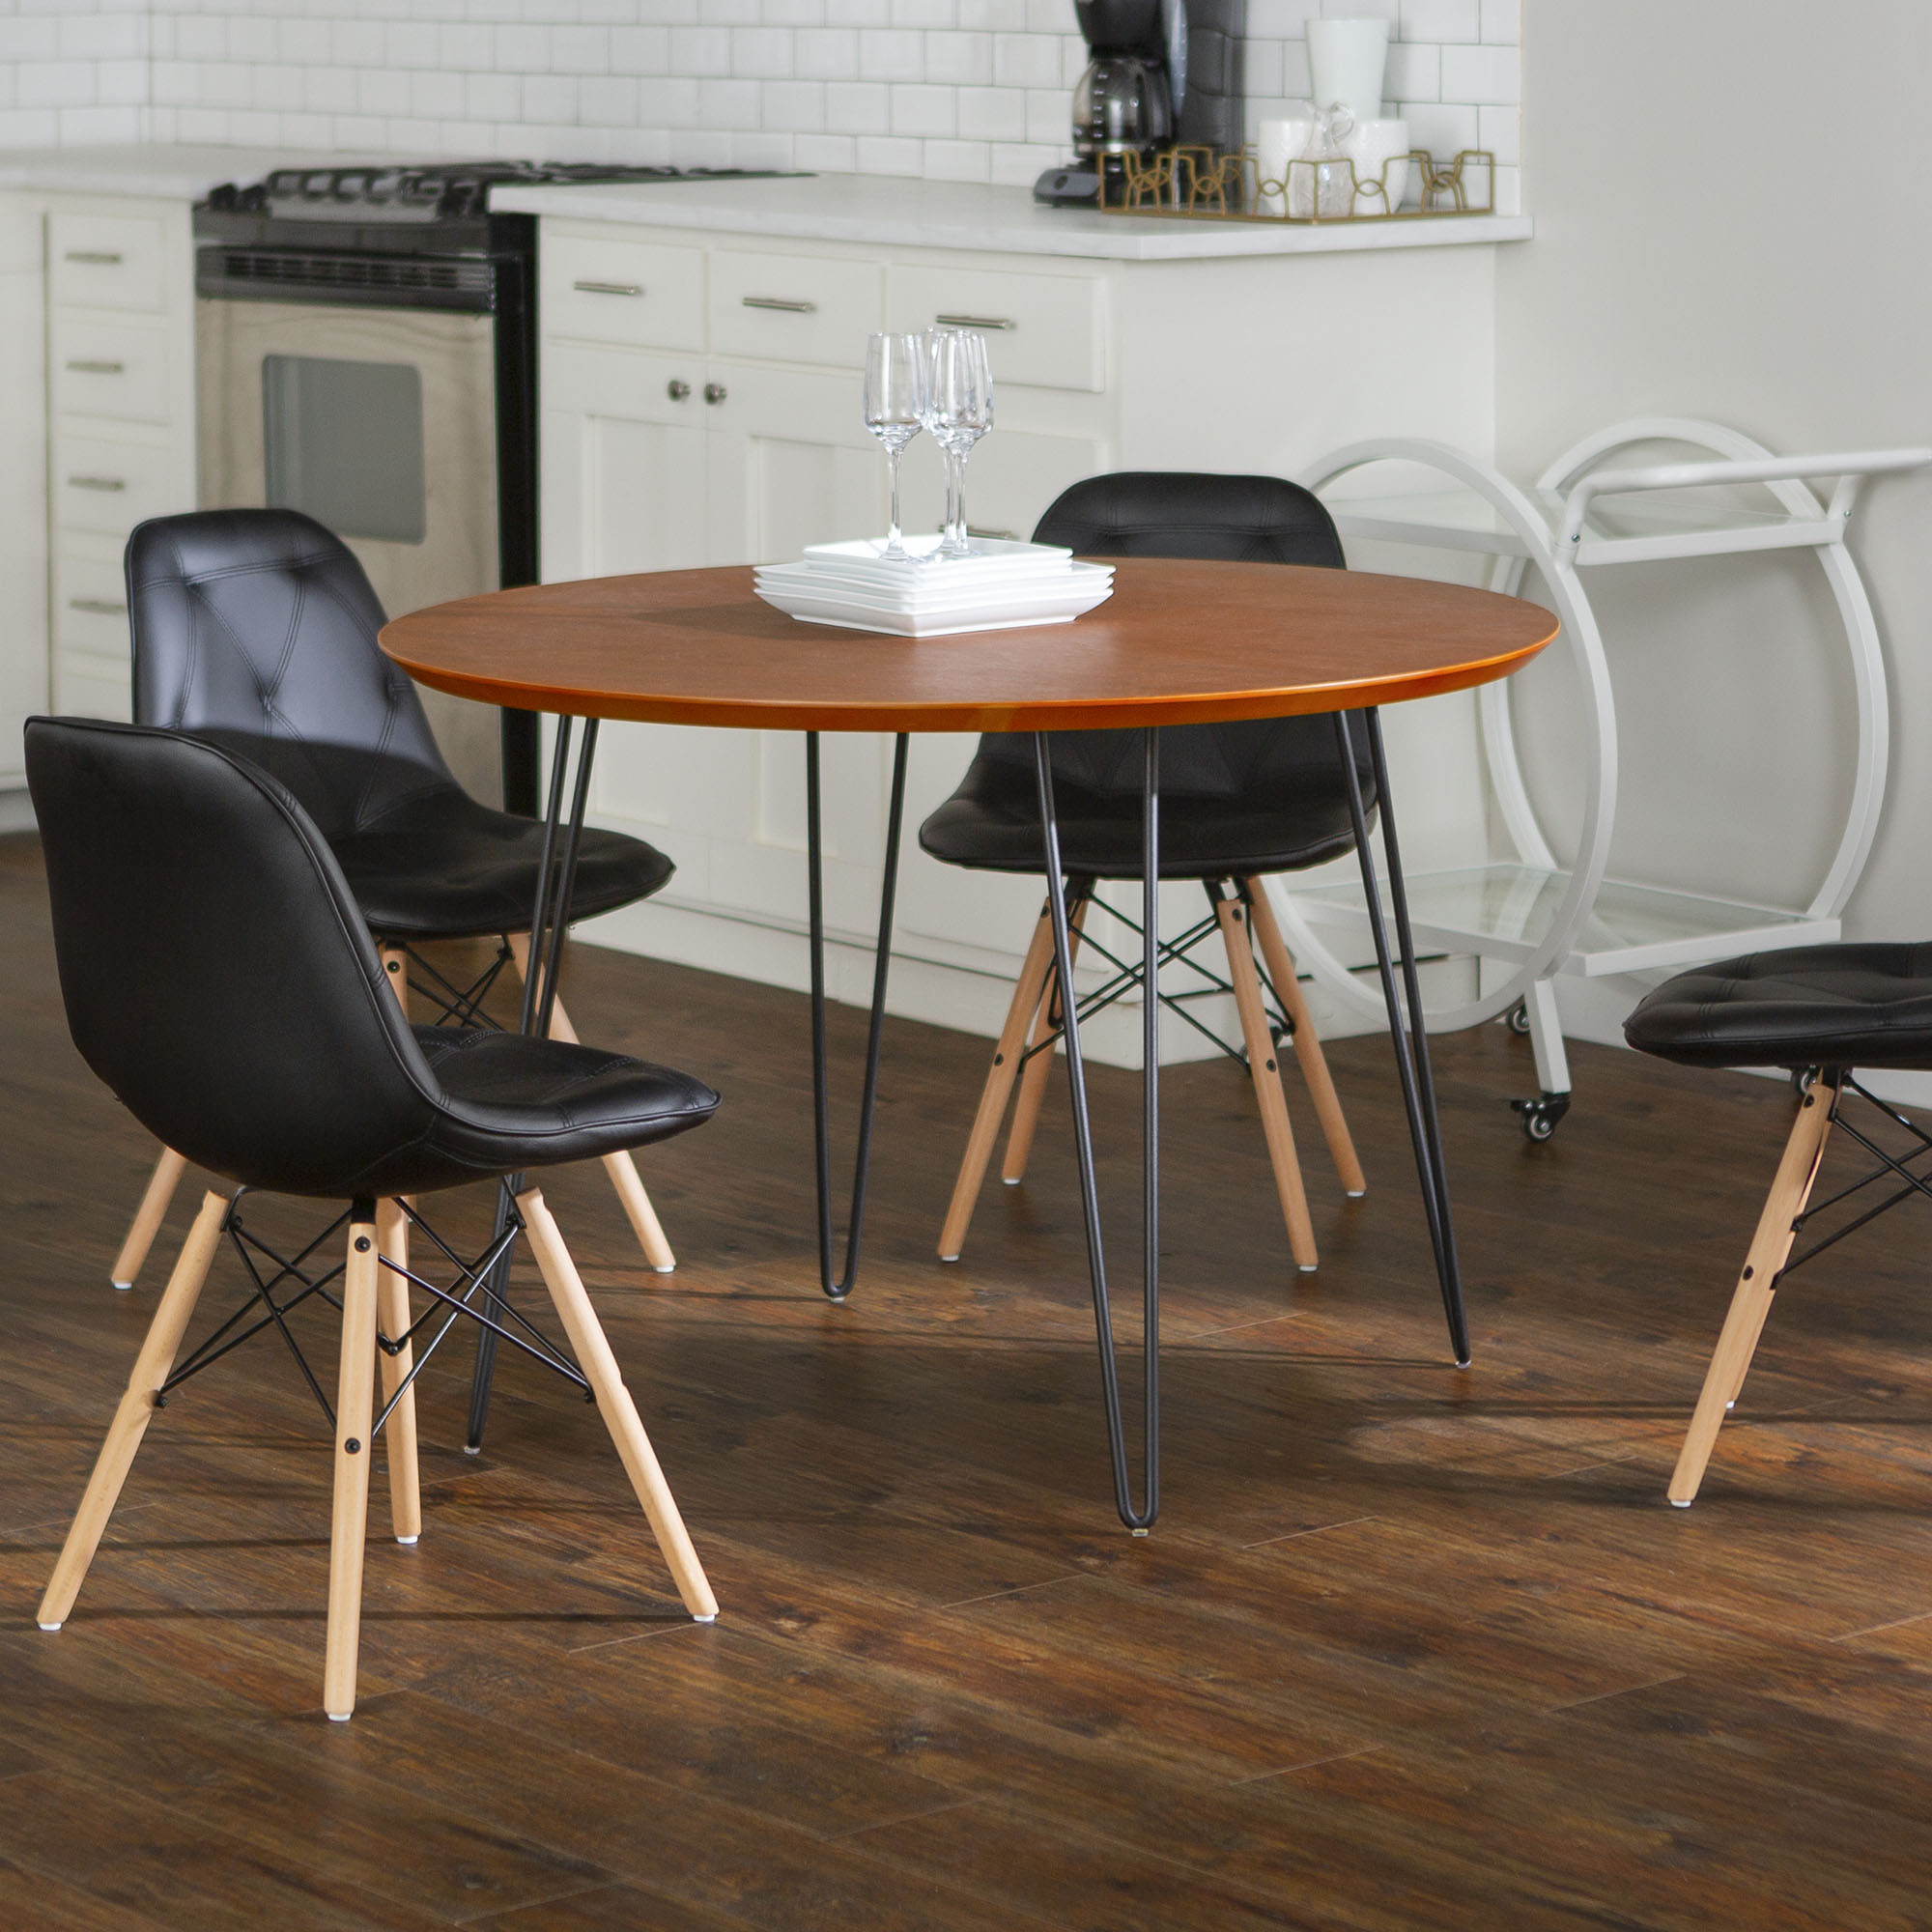 Manor Park Modern 5-Piece Dining Set with Wood Table and Blue Eames Style Chairs